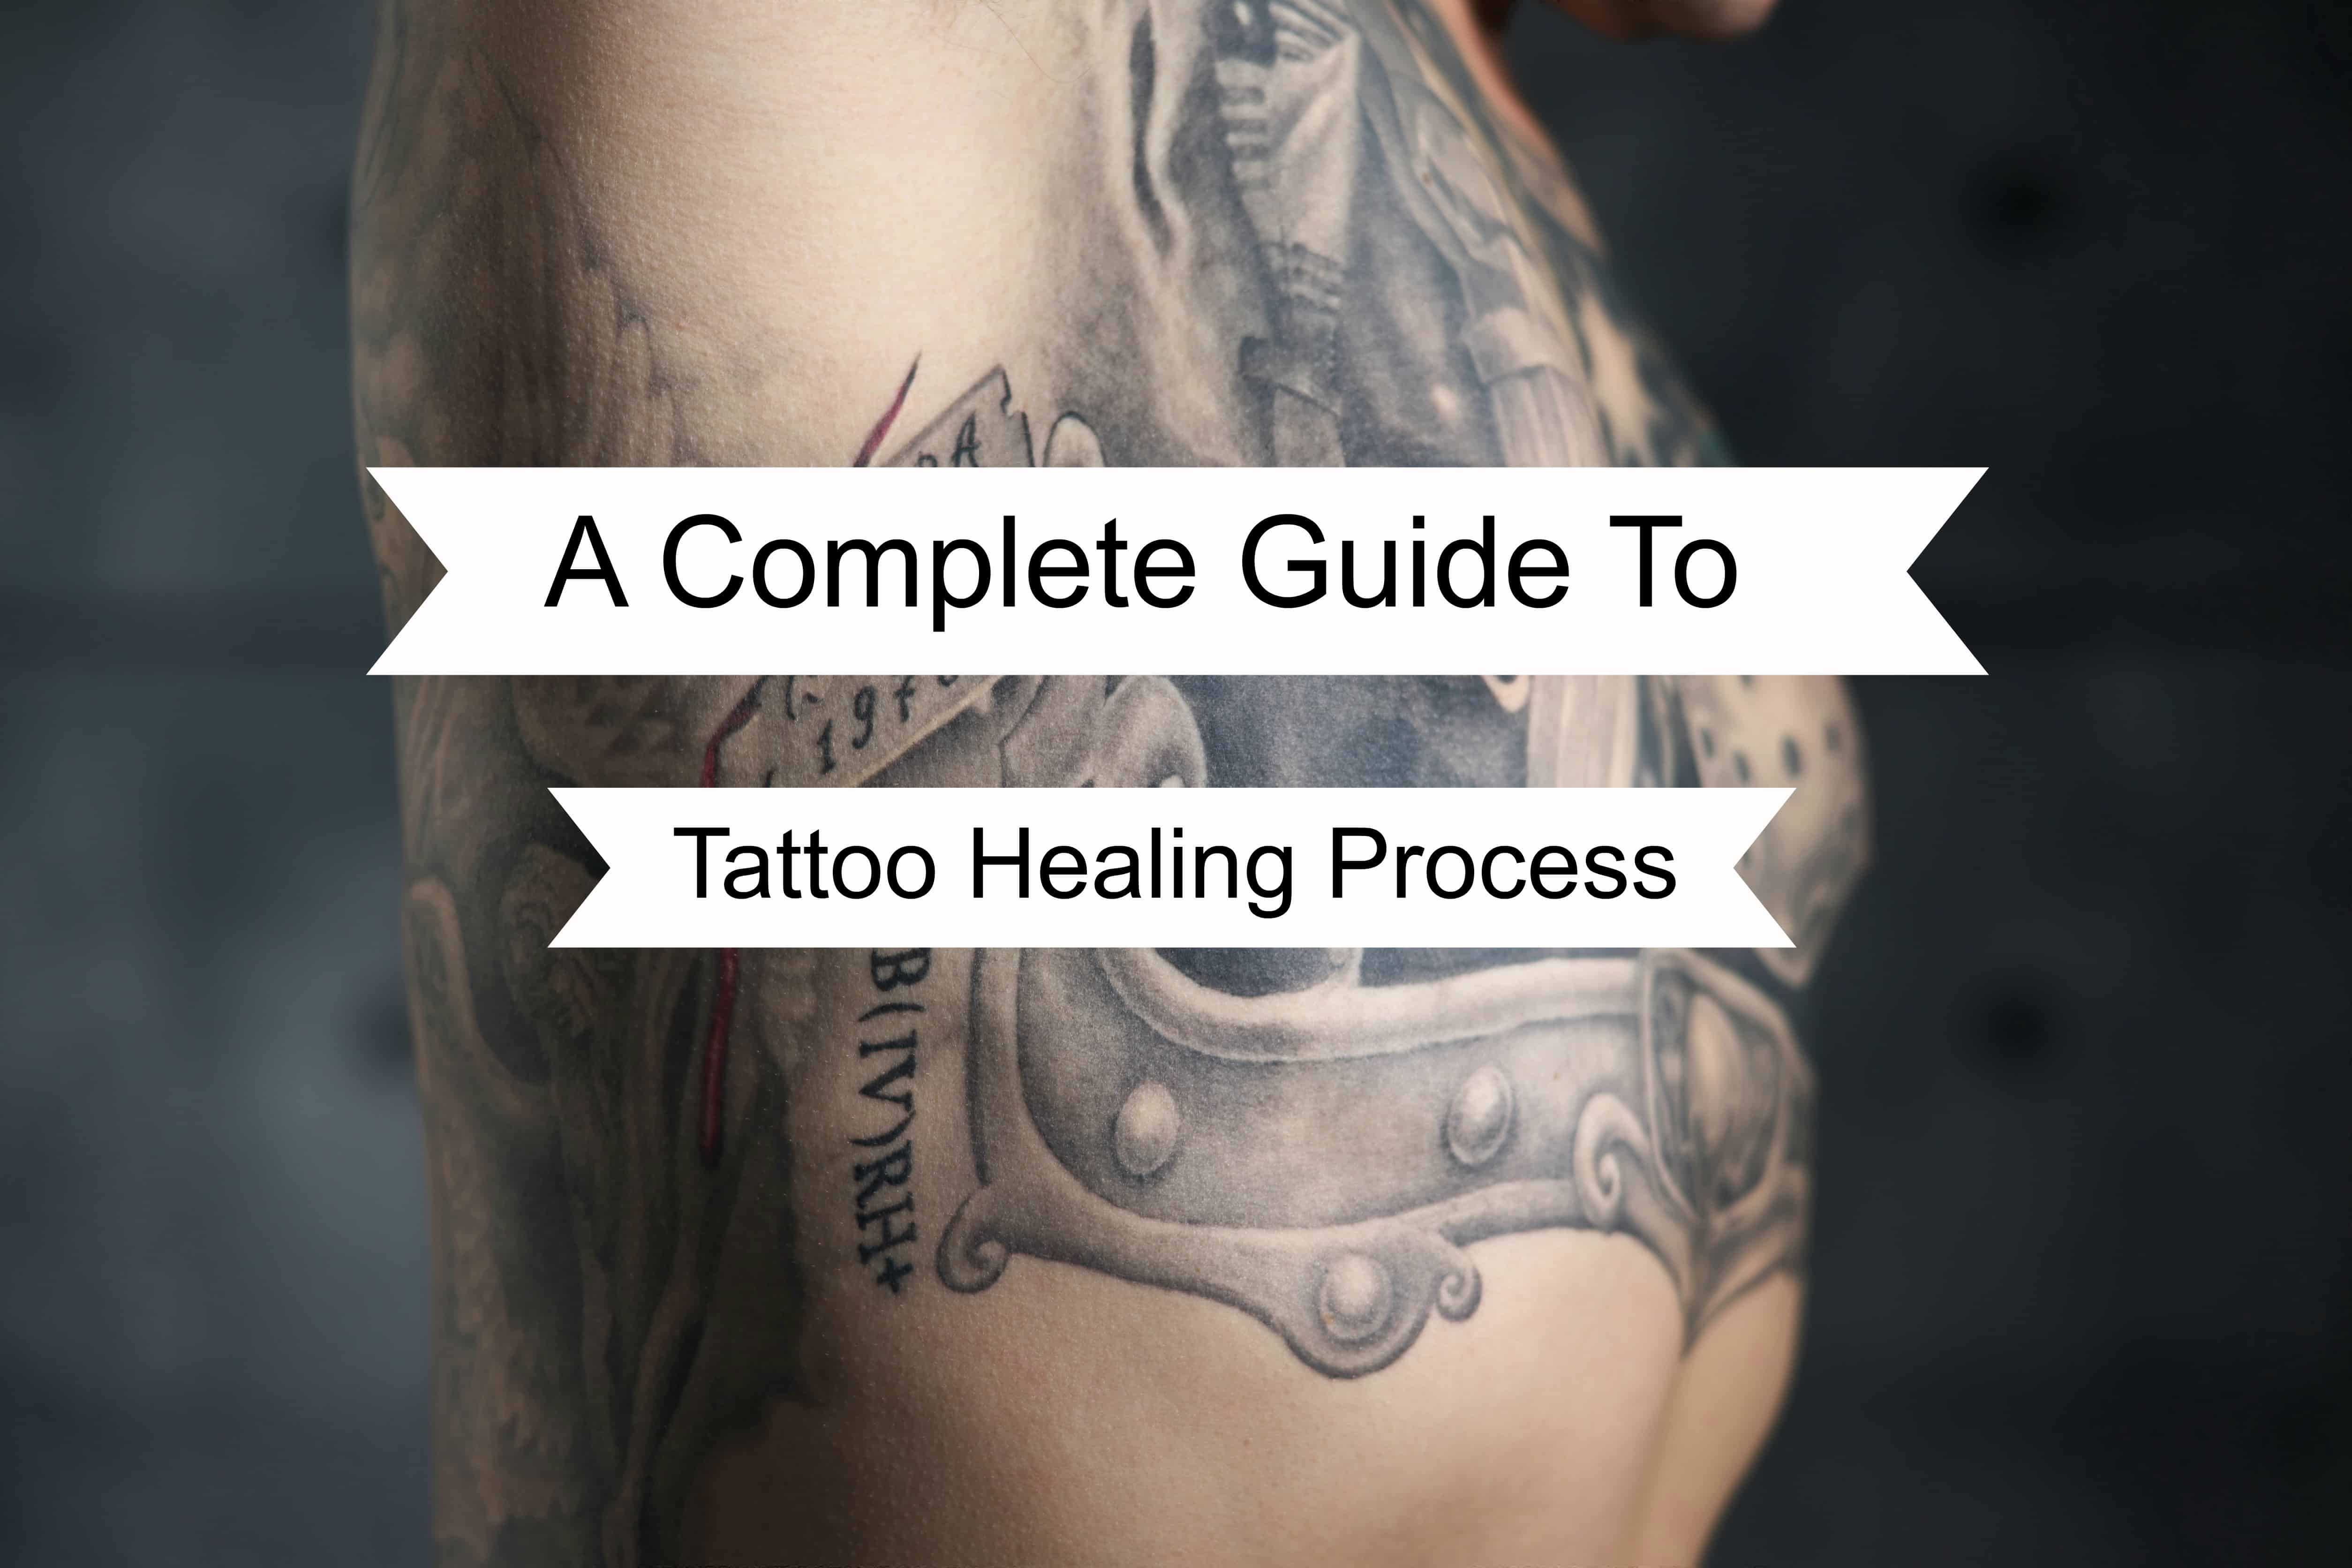 complete guide to tatttoo healing process tattoo aftercare